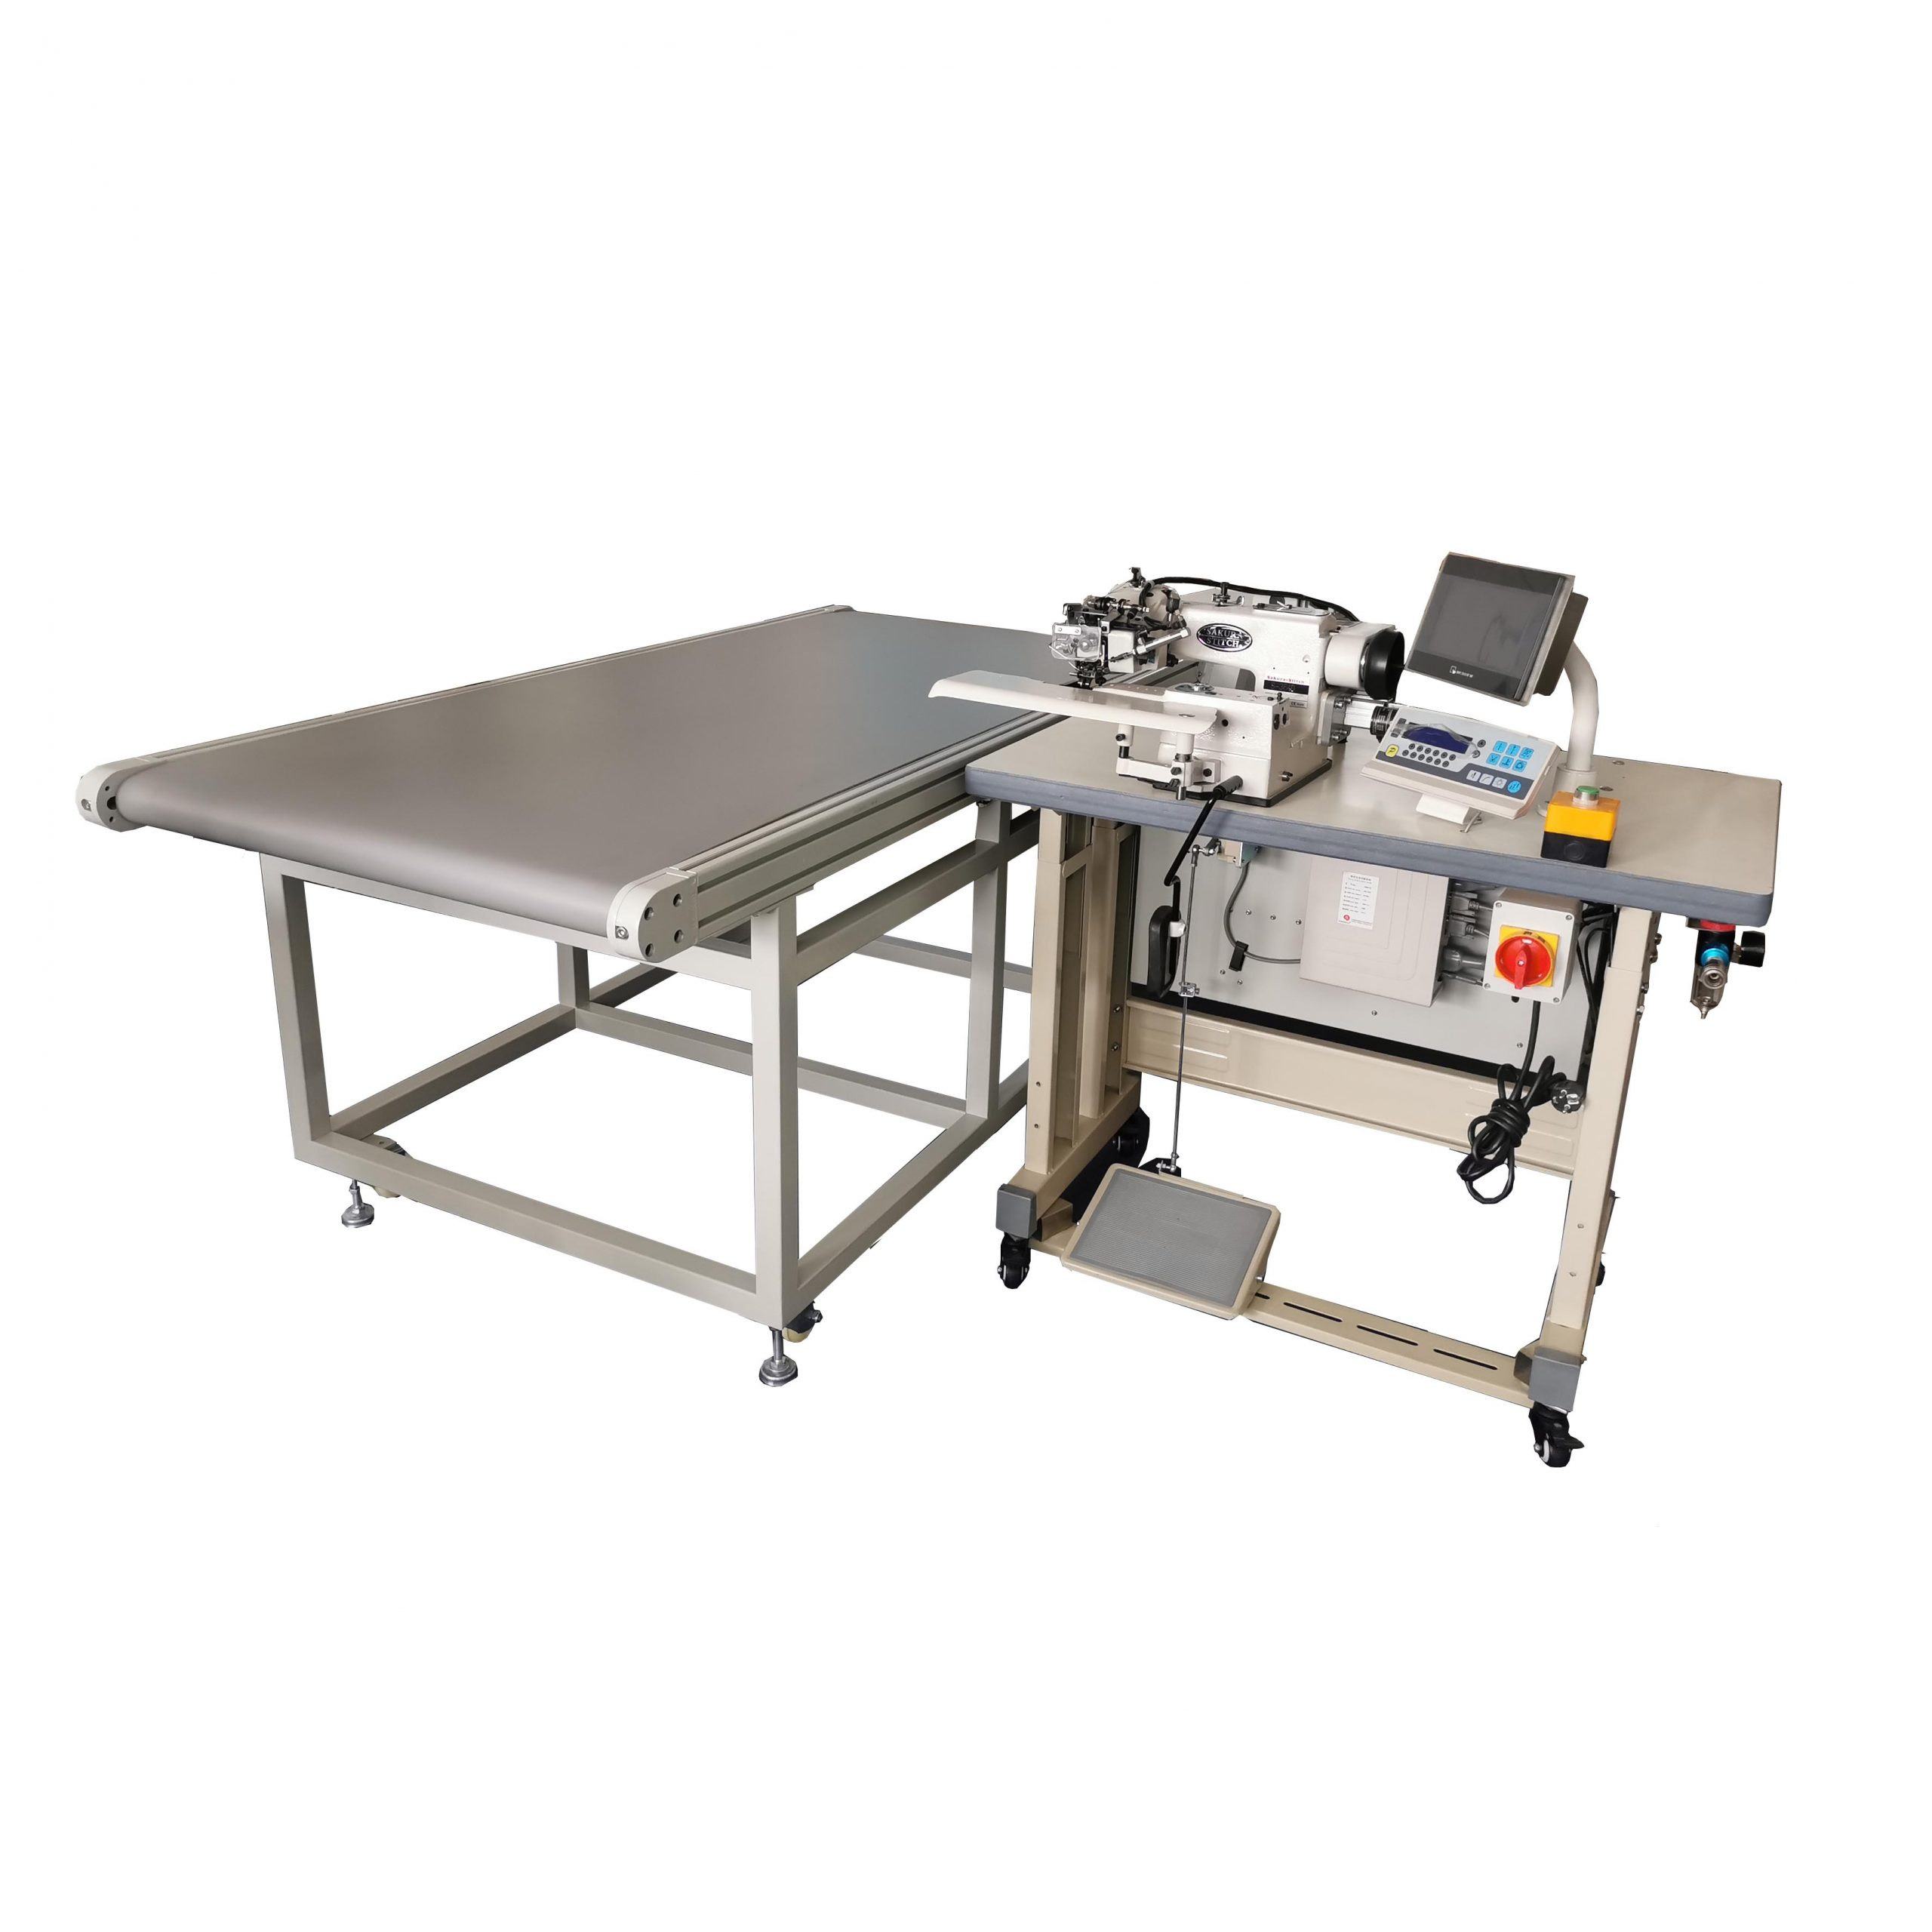 Curtain Blindstitch Hemming with Conveyor Workstation